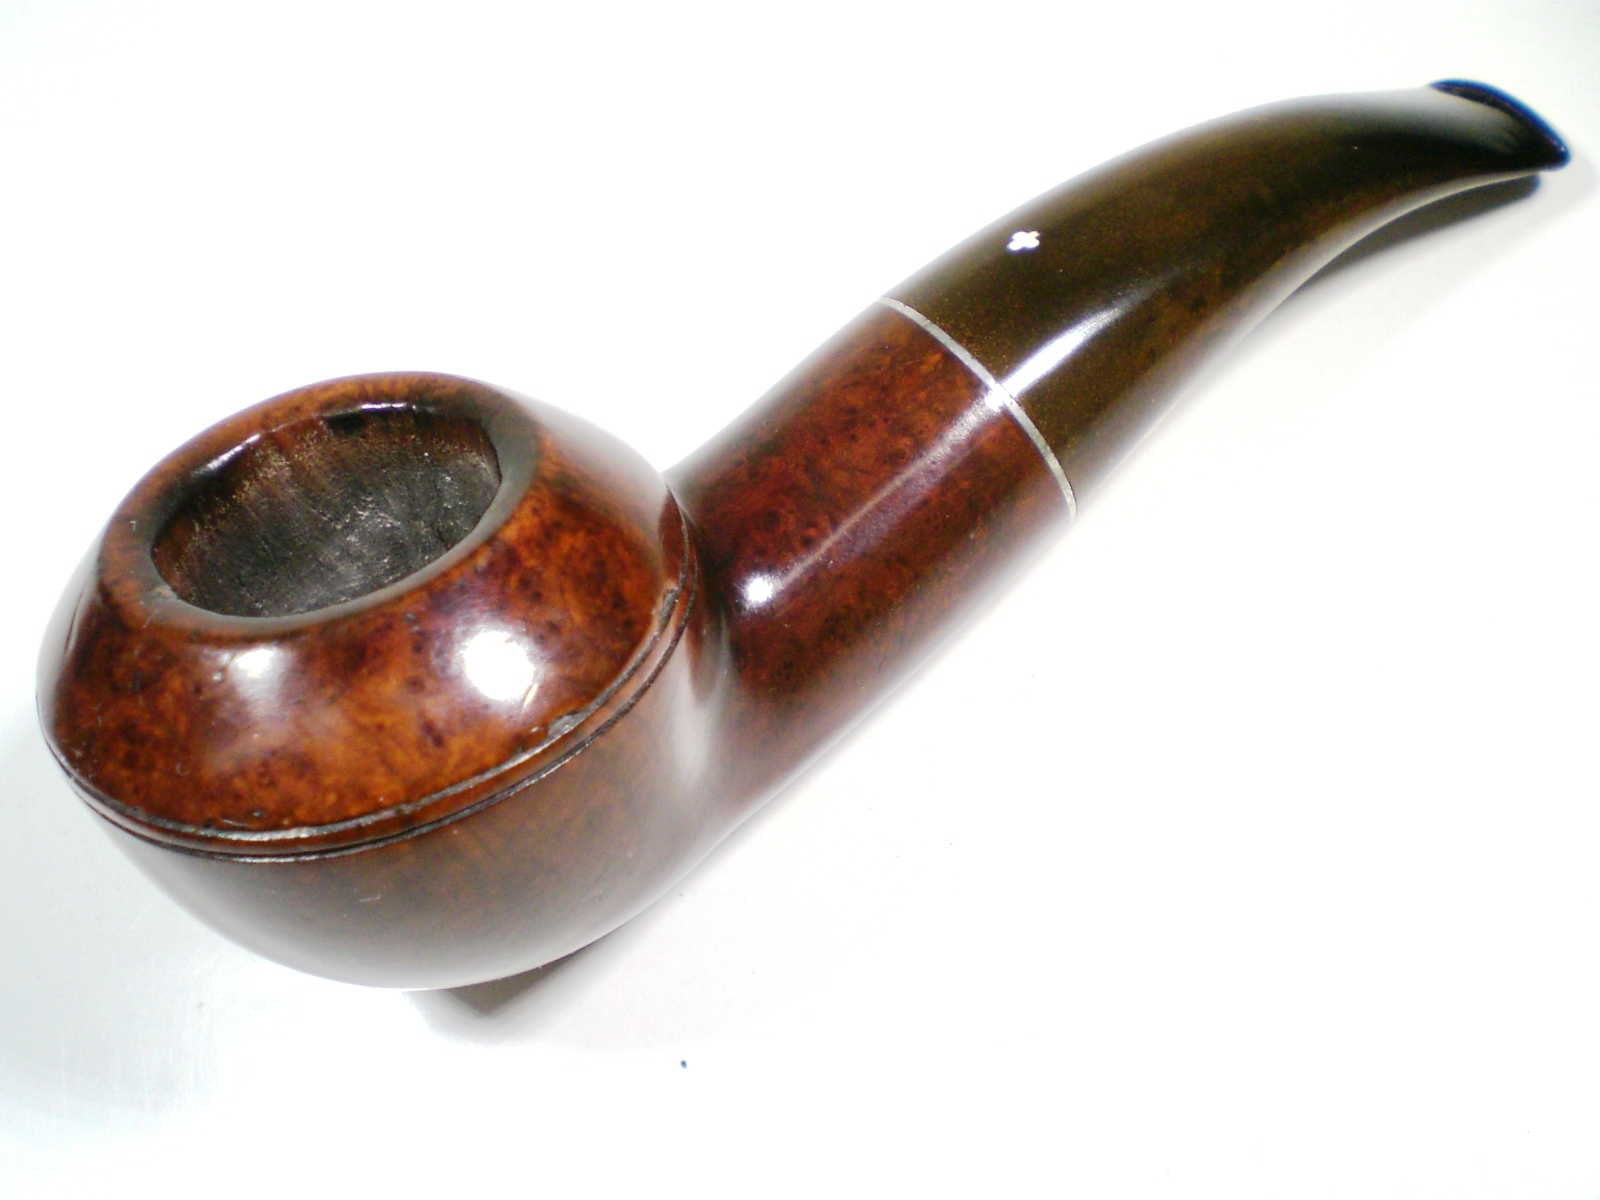 Dating kaywoodie pipes